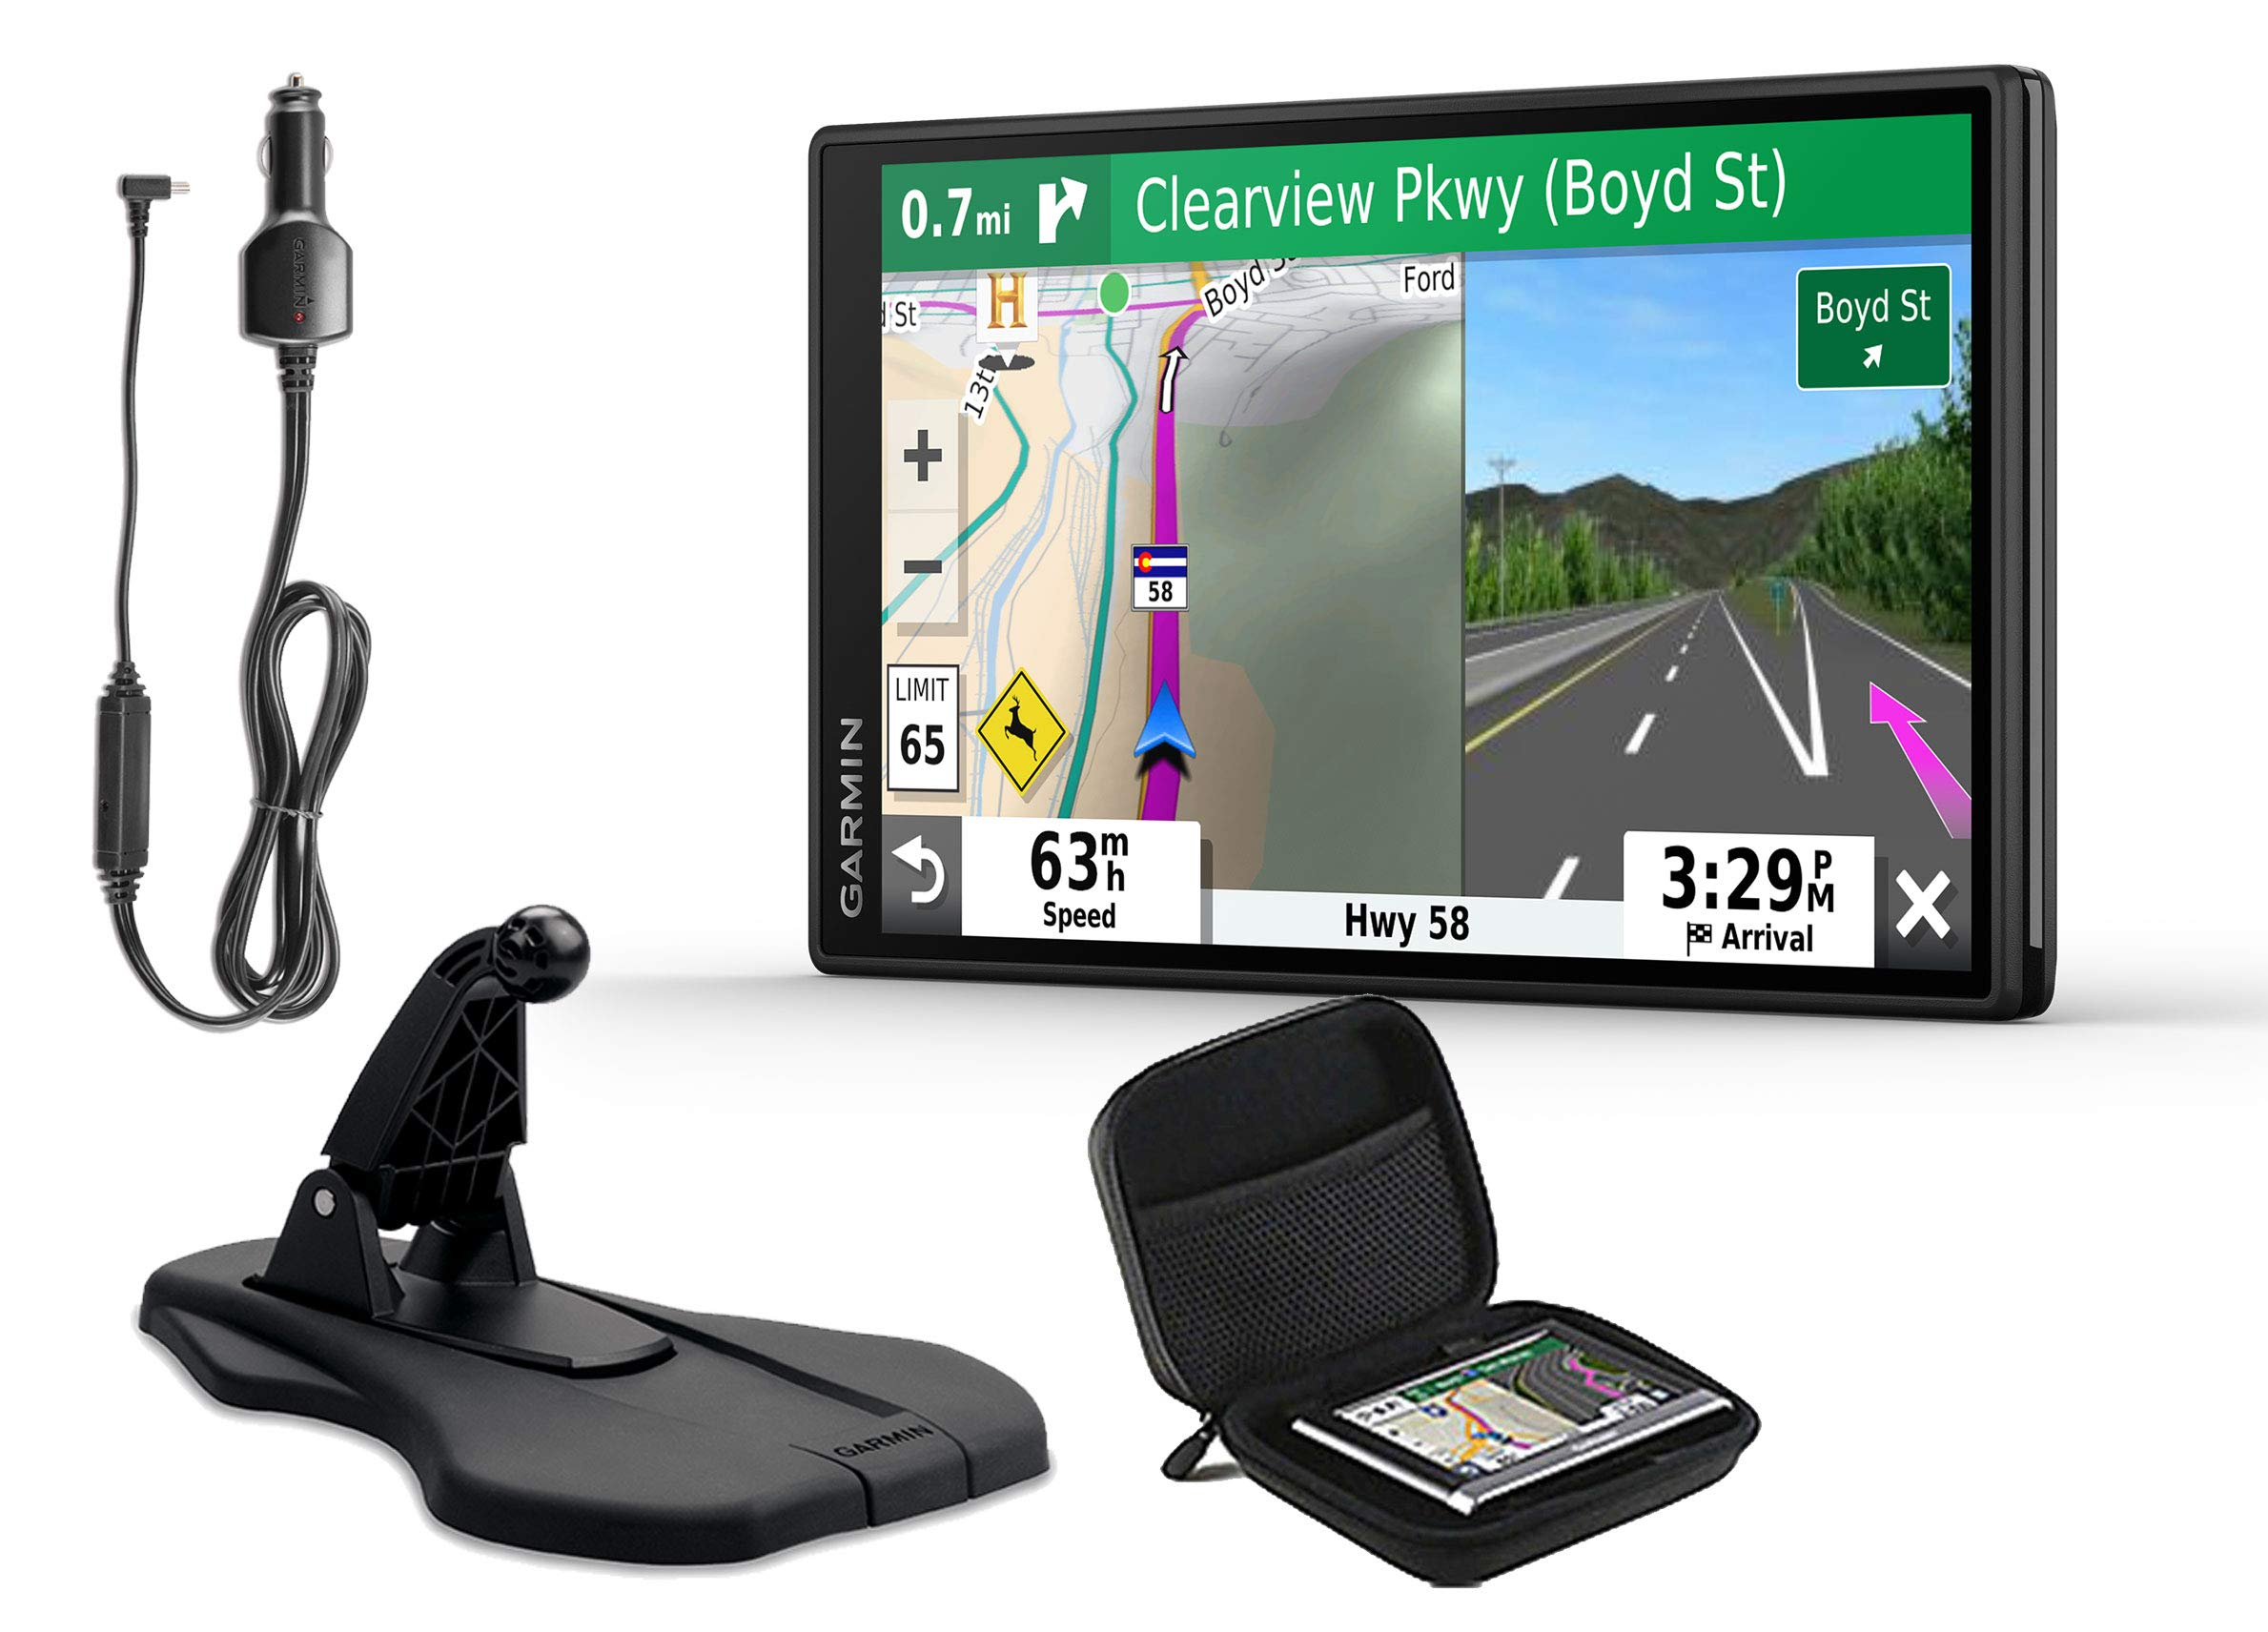 Garmin DriveSmart 55 & Traffic 2019 GPS Vehicle Navigation | Bundle w/Premium Dashboard Friction Mount & PlayBetter Protective Case | Traffic Avoidance, Voice-Activated + Directions, Hi-Res Display by PlayBetter